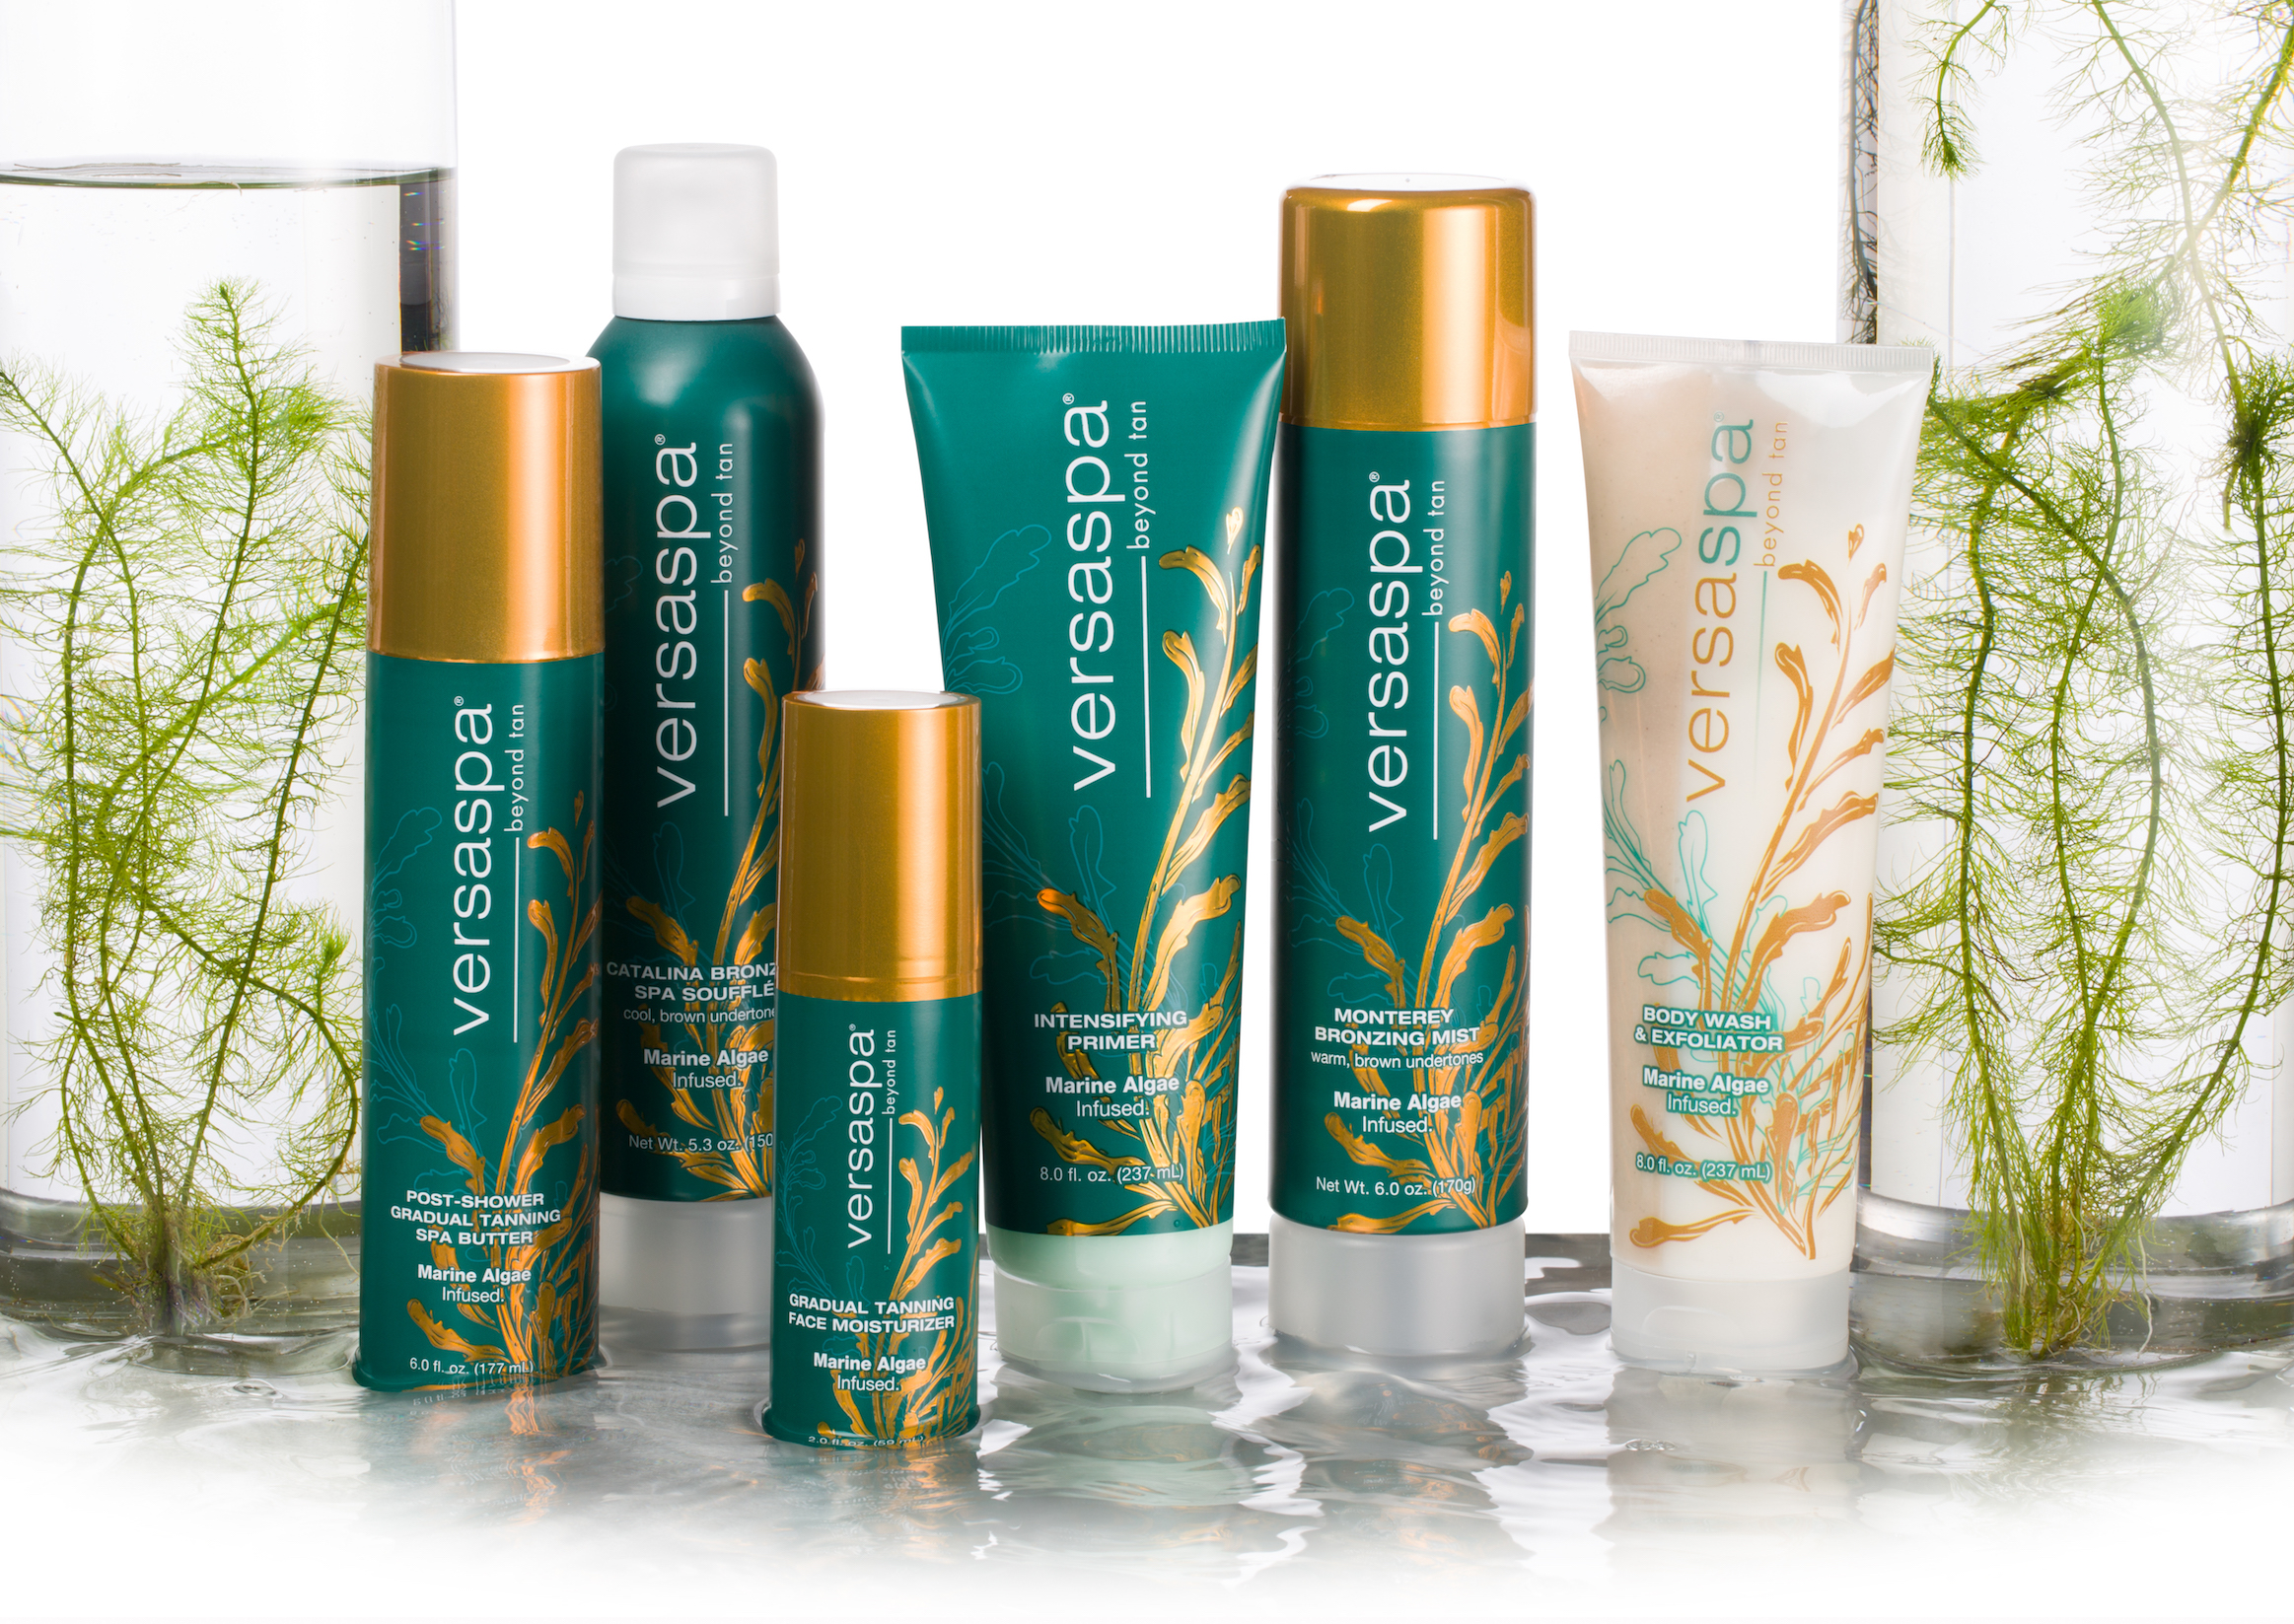 VersaSpa Sunless Tanning Products